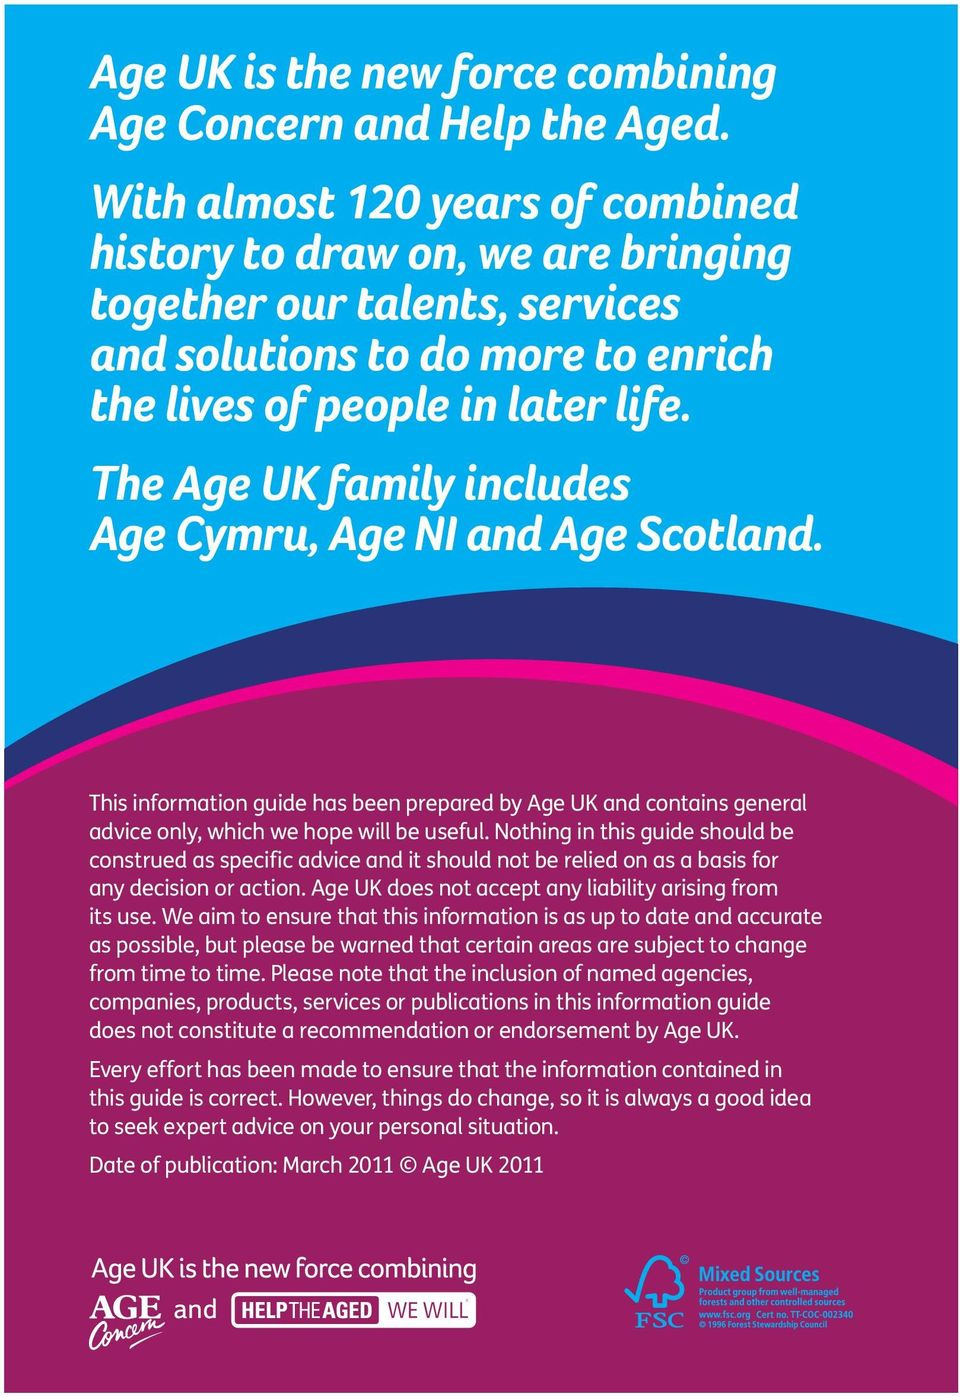 The Age UK family includes Age Cymru, Age NI and Age Scotland. This information guide has been prepared by Age UK and contains general advice only, which we hope will be useful.